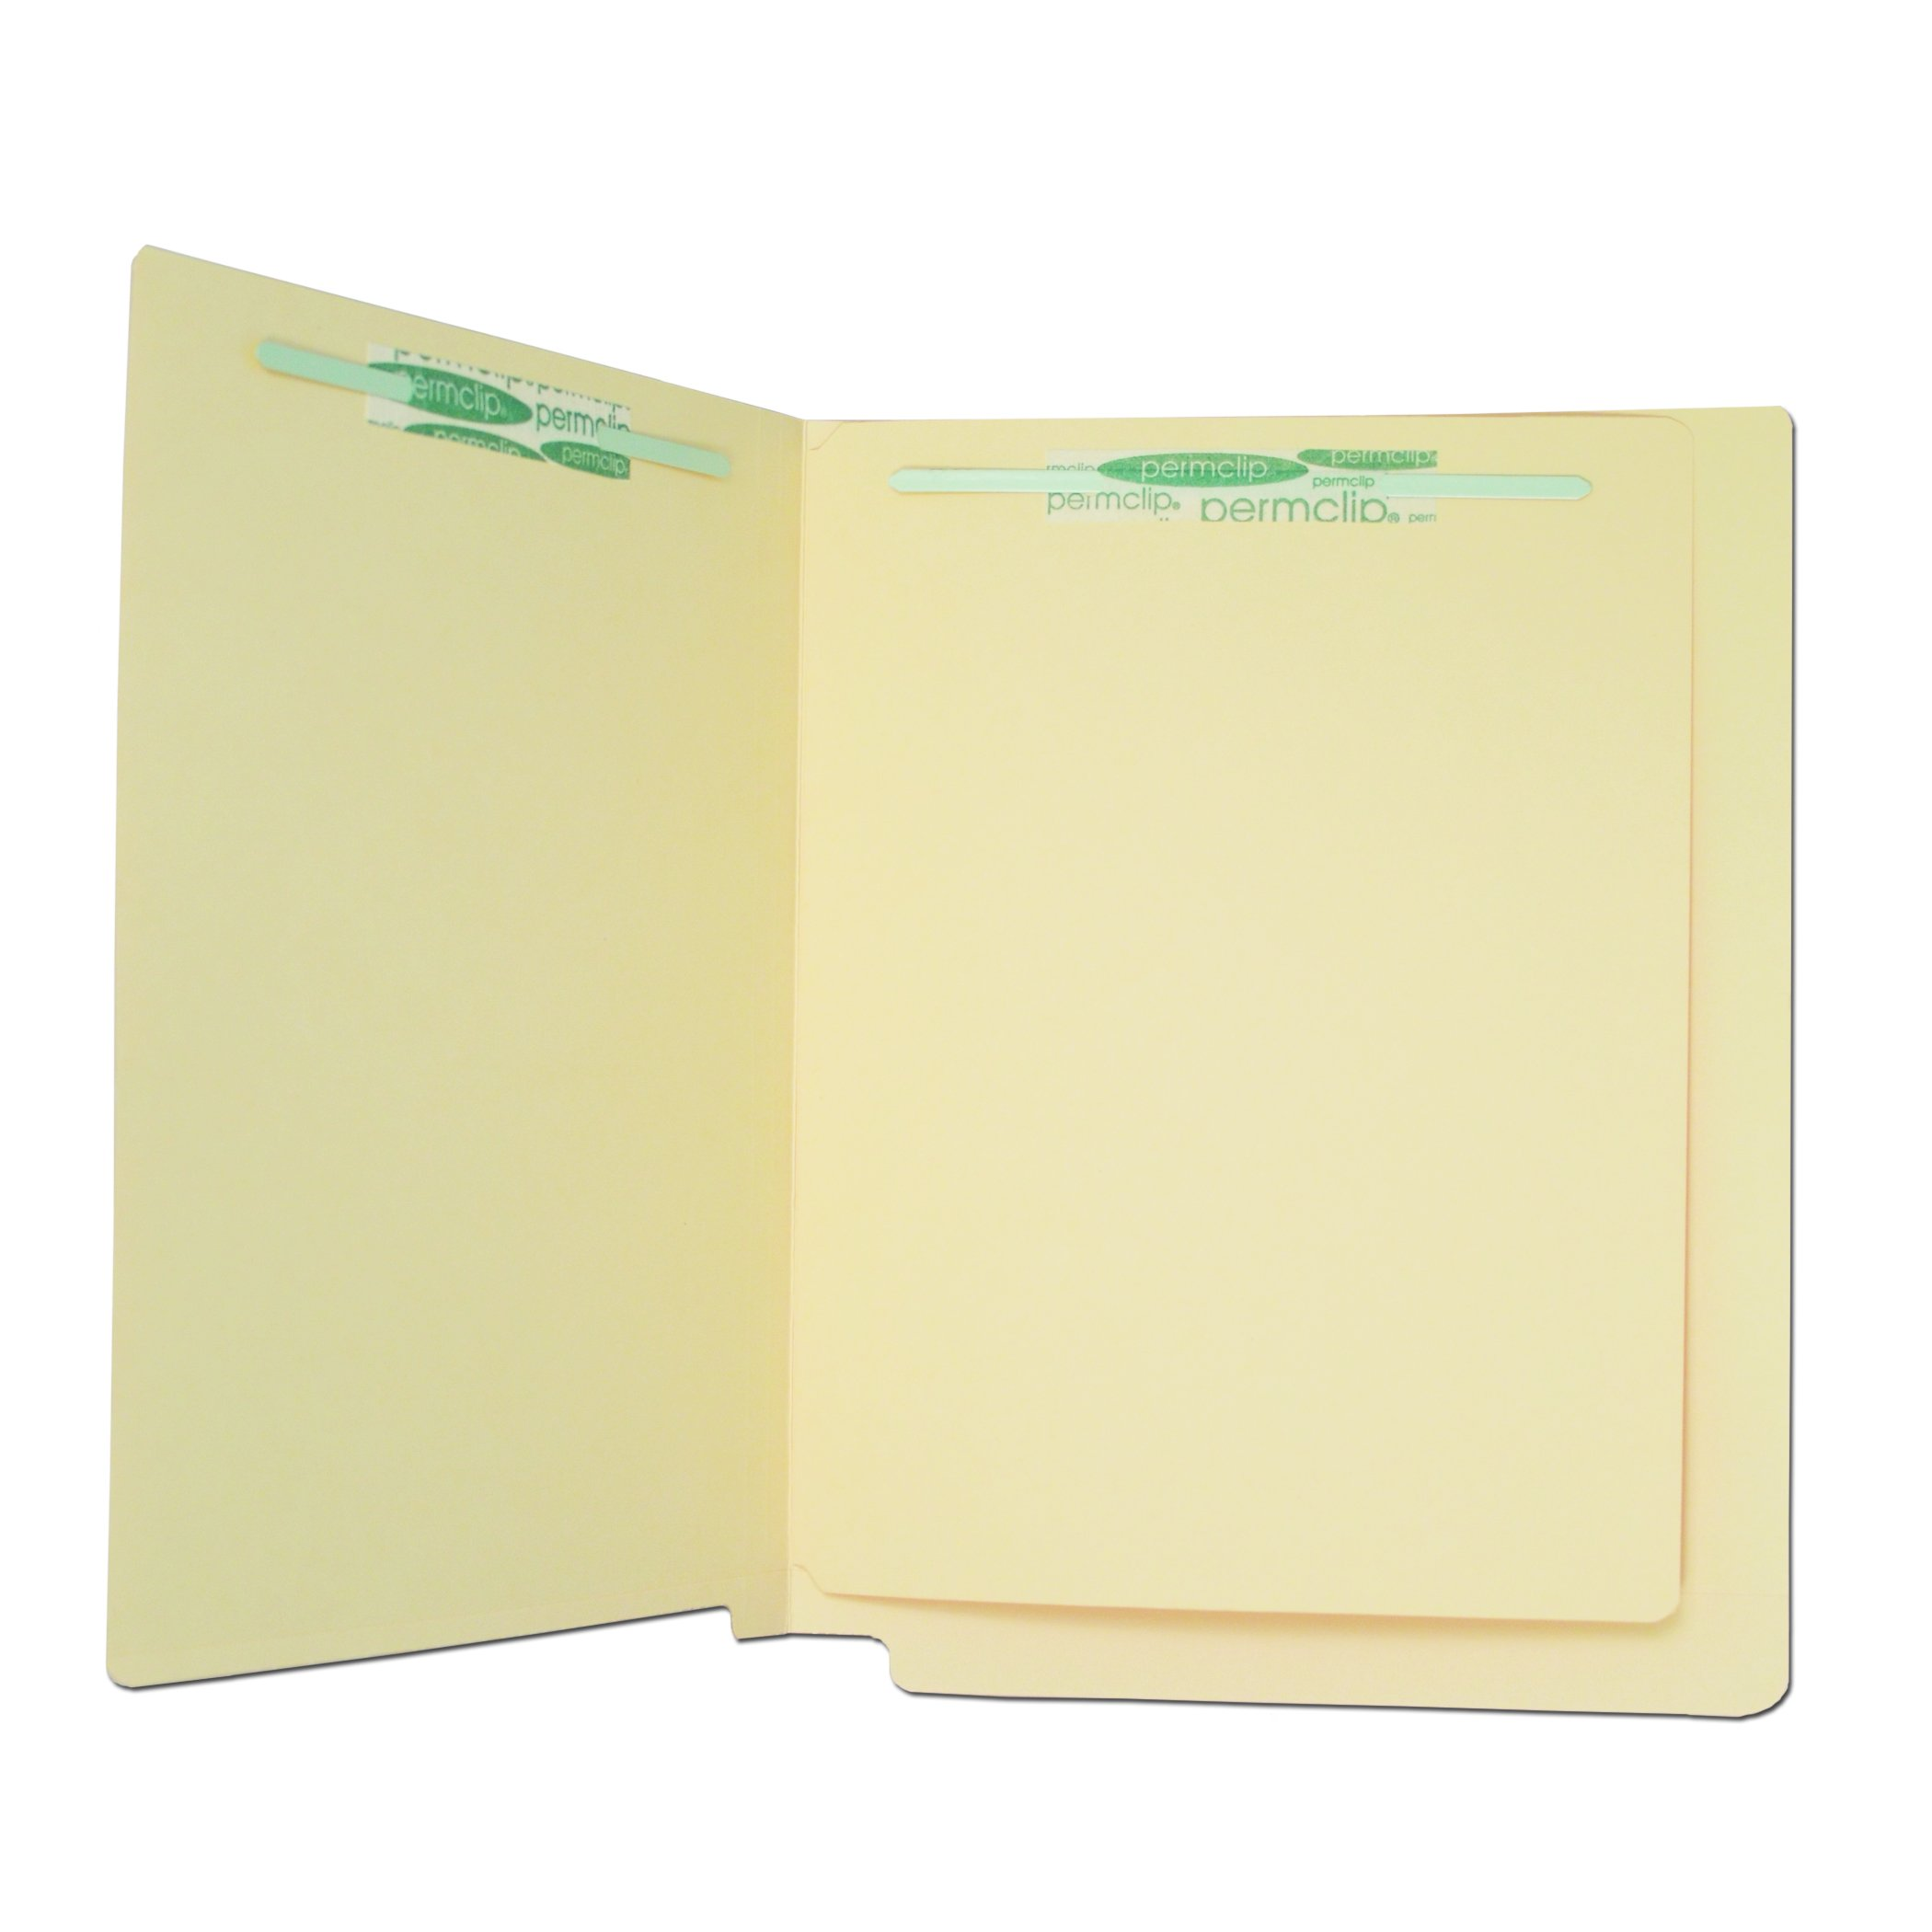 Manila File Folder with 4 Permclip Fasteners and 1 Divider- 11pt, Reinforced End Tab (200/Box)